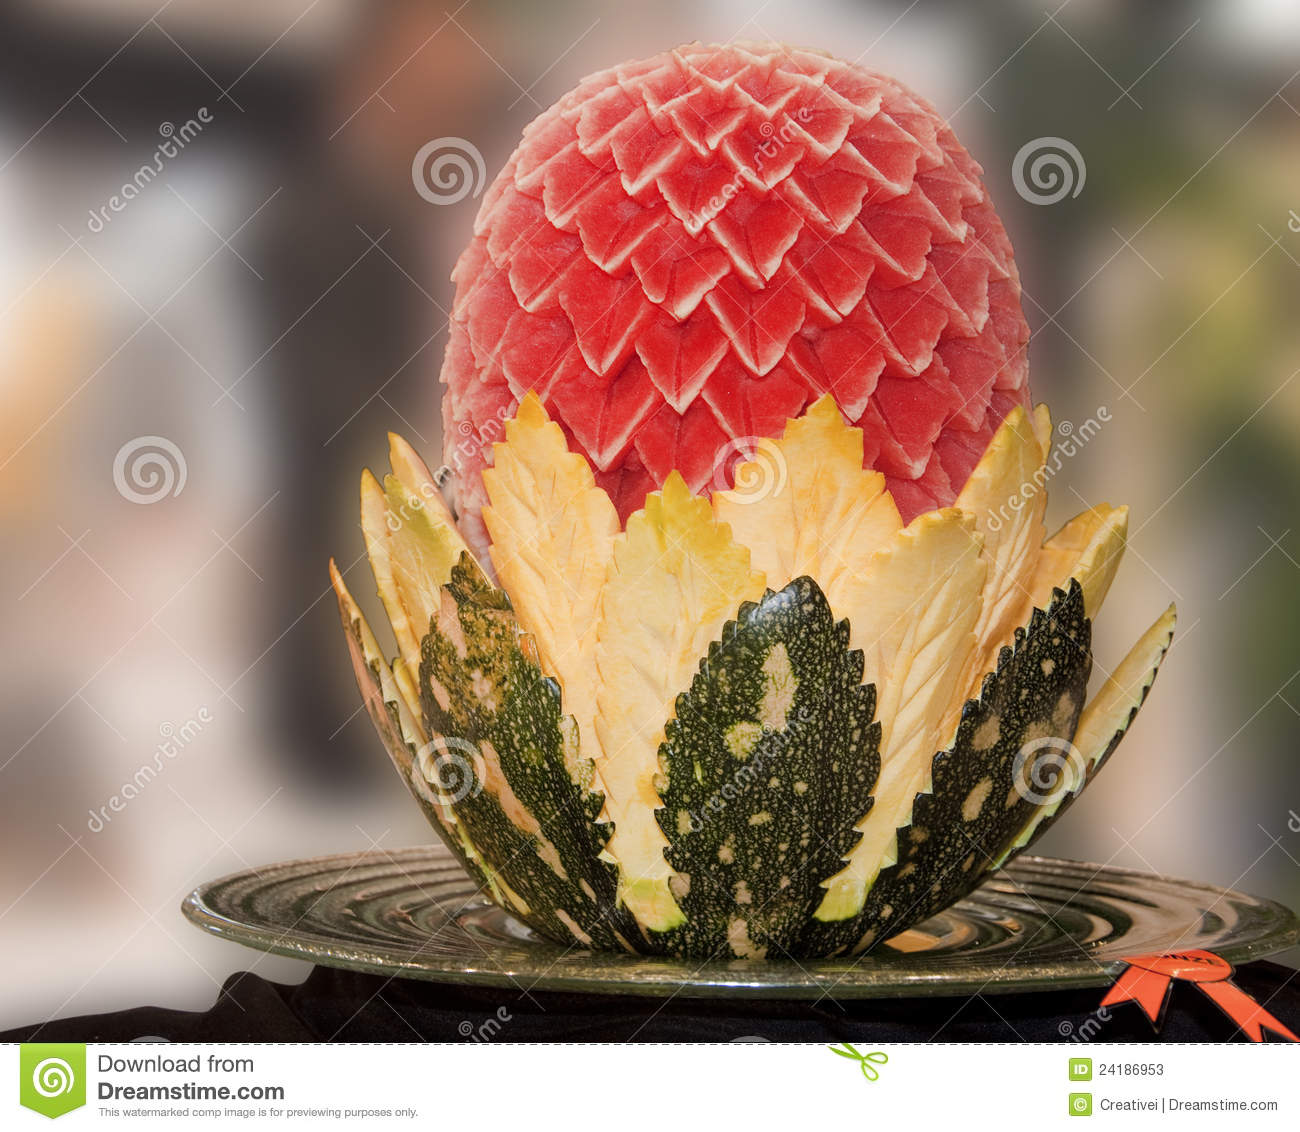 Food carving stock photos image